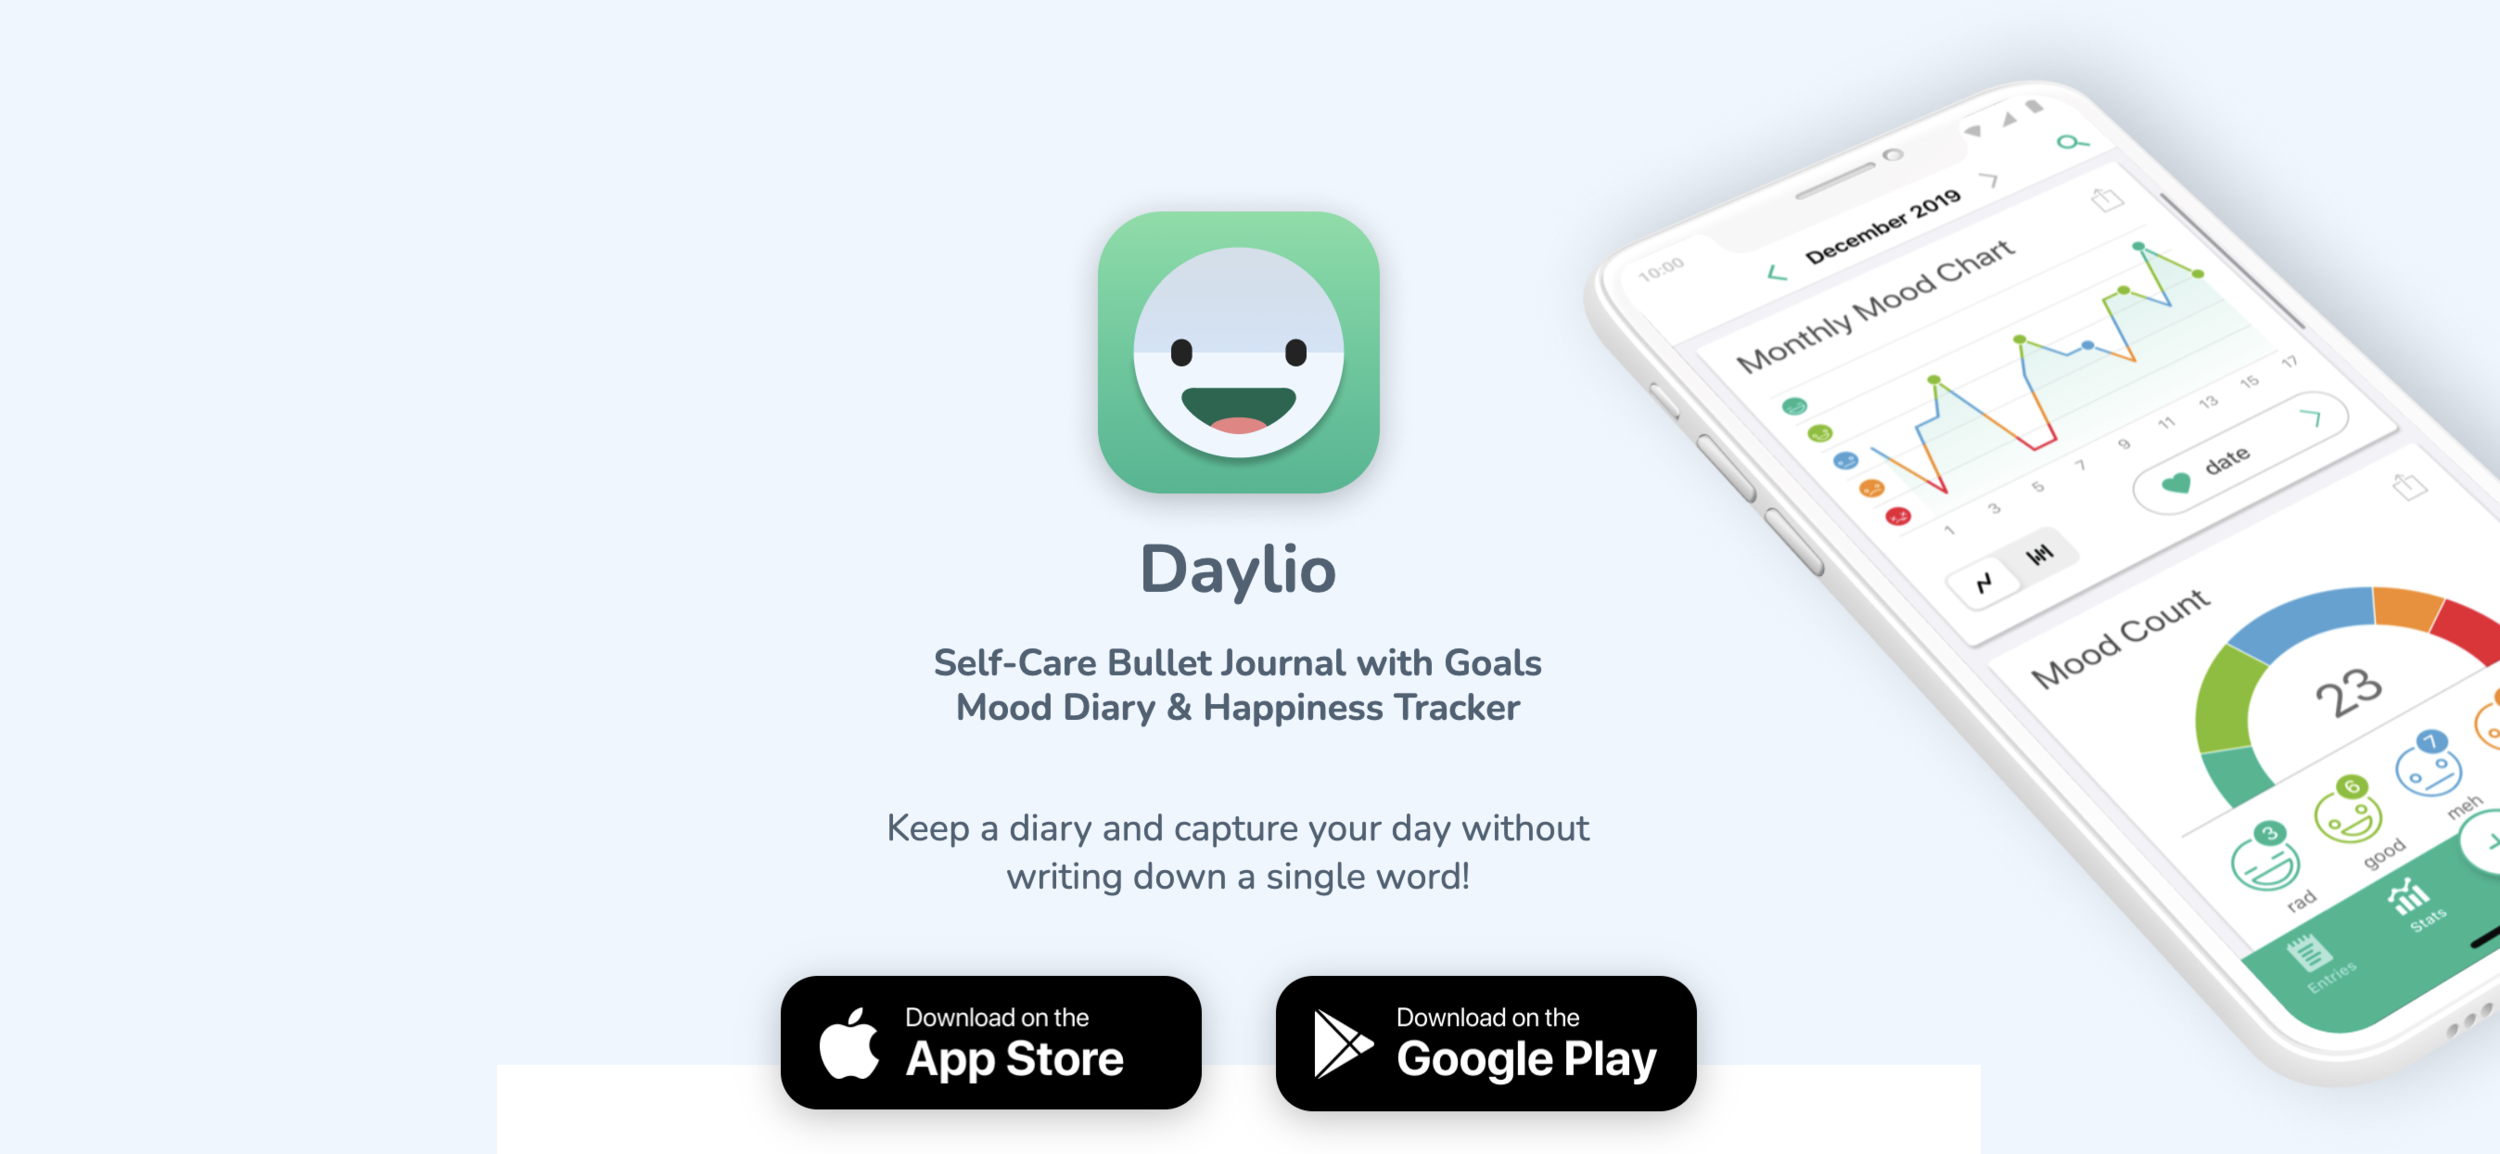 Daylio - Self-care bullet journal with goals mood diary and happiness trackers. Keep a diary and capture your day without writing down a single word.